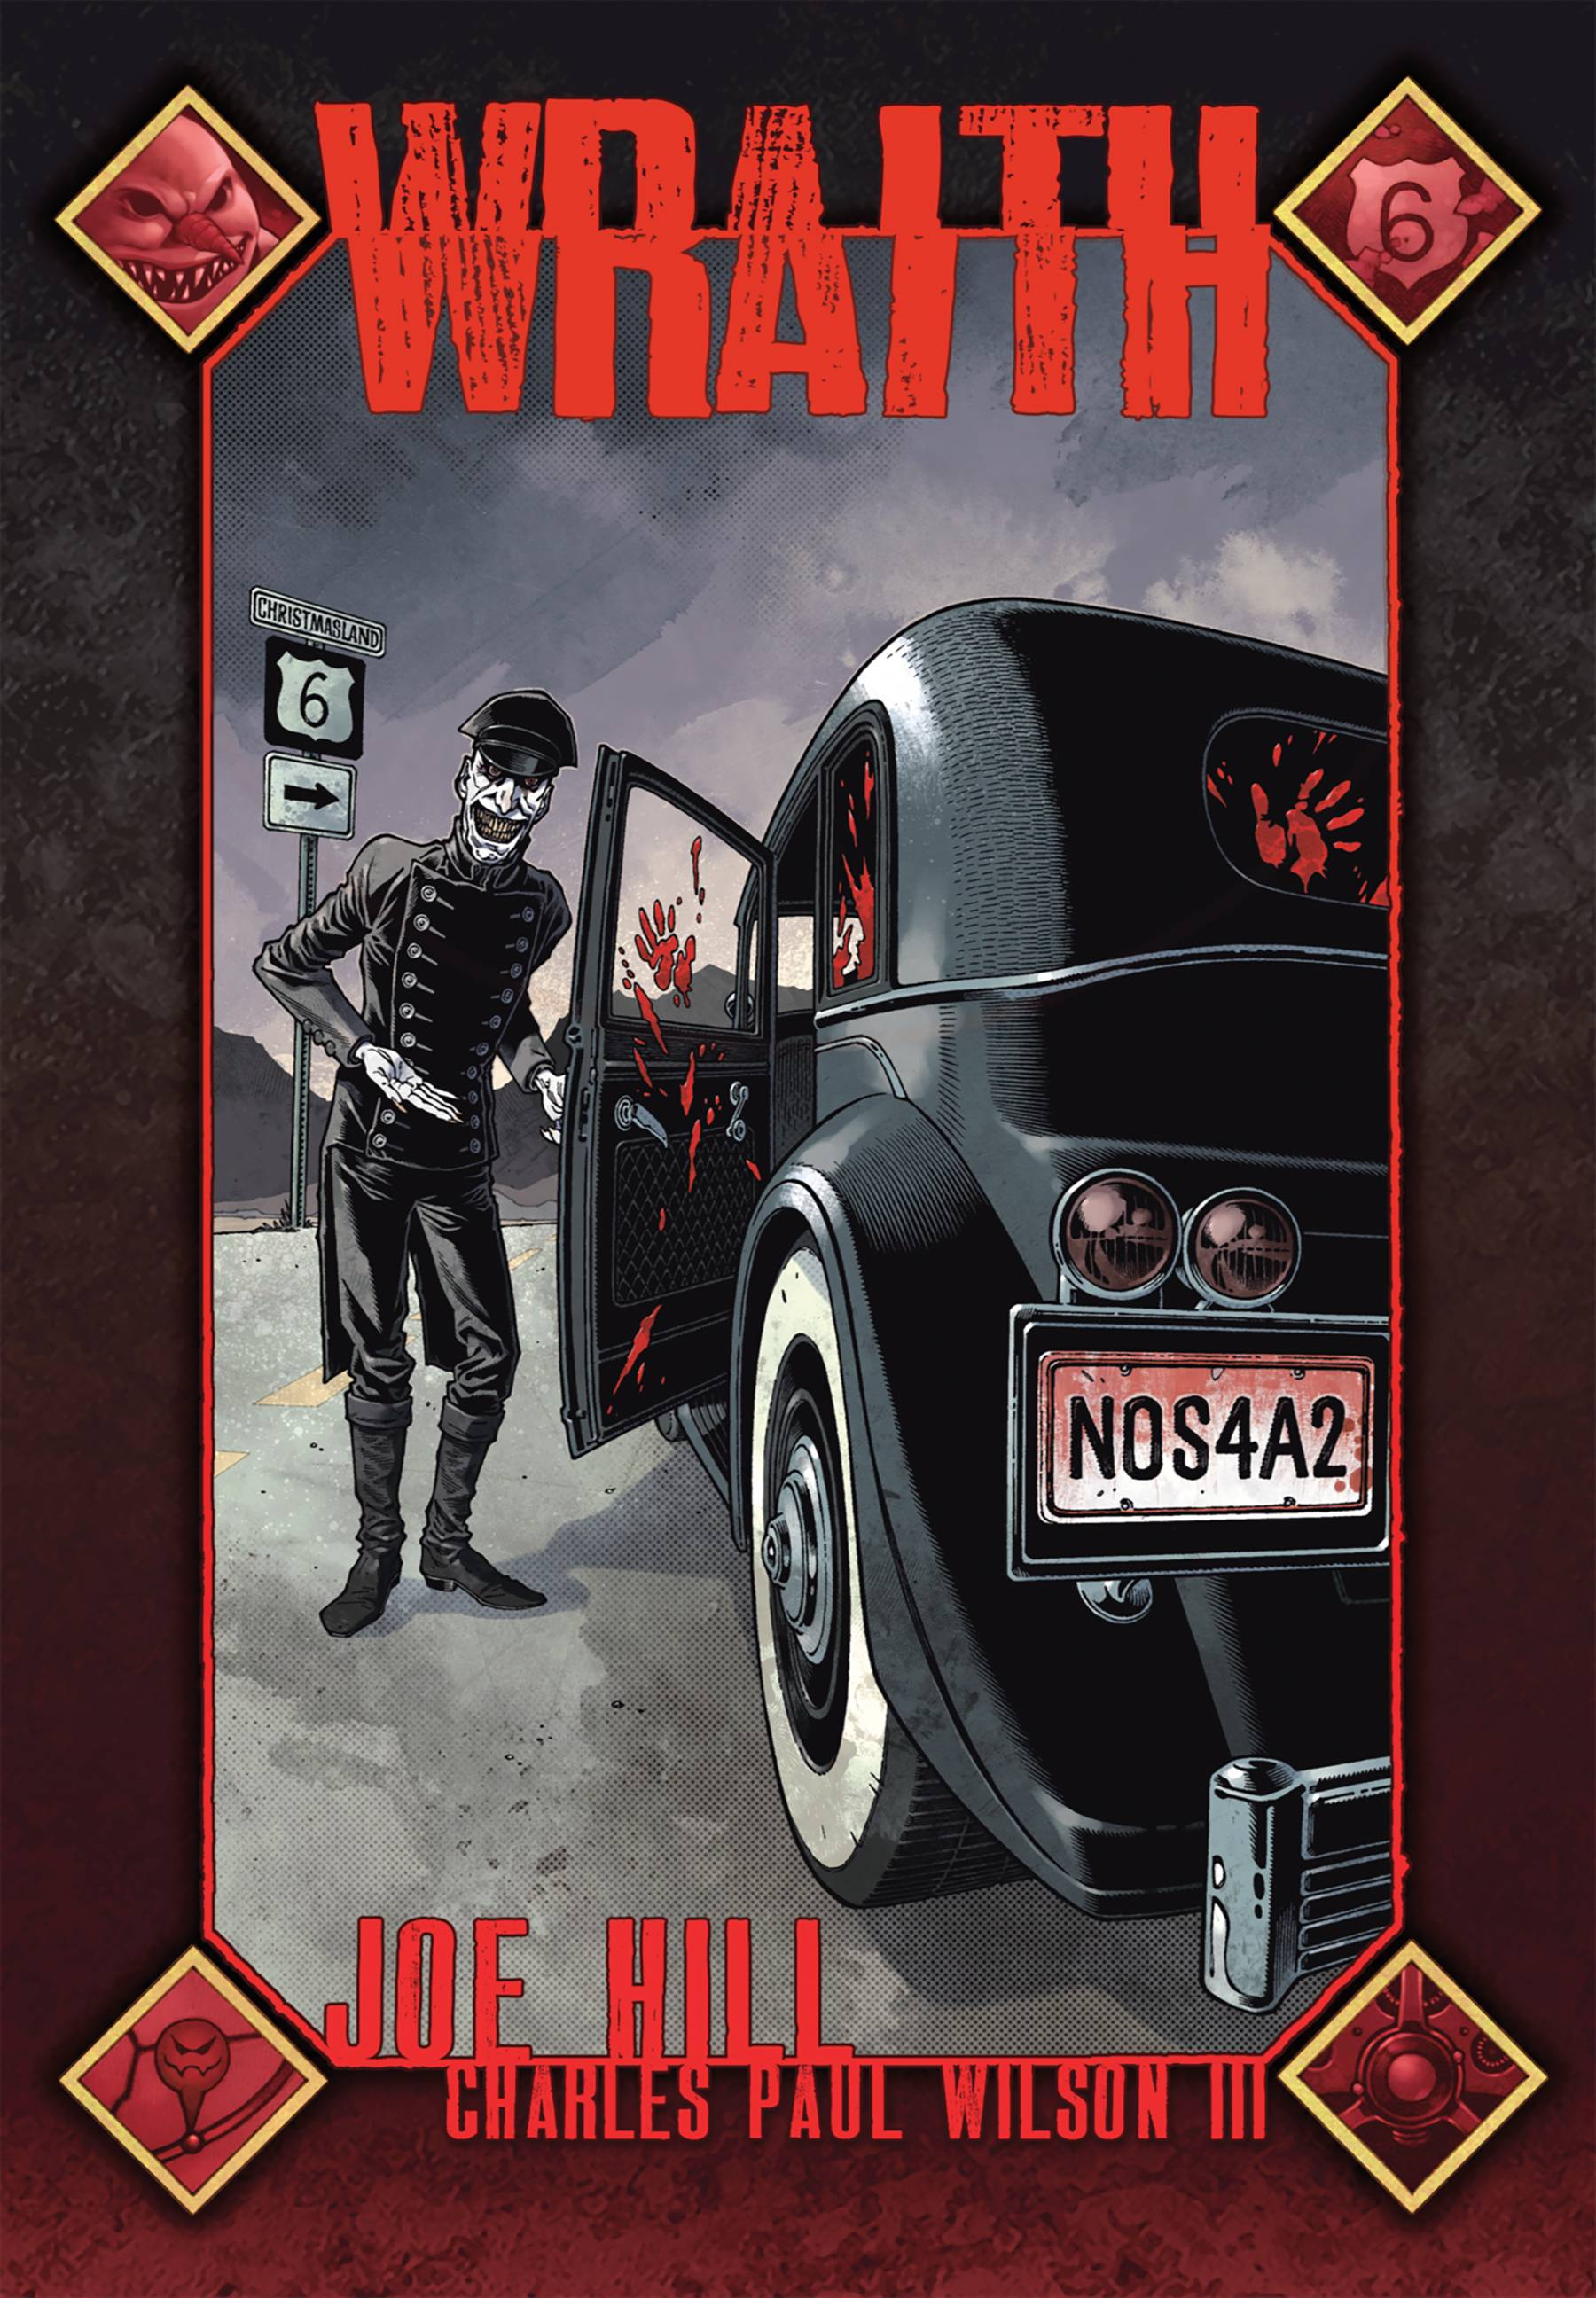 Get ready for NOS4A2 with Wraith Signed by Joe Hill! Plus new Goon from Eric Powell!